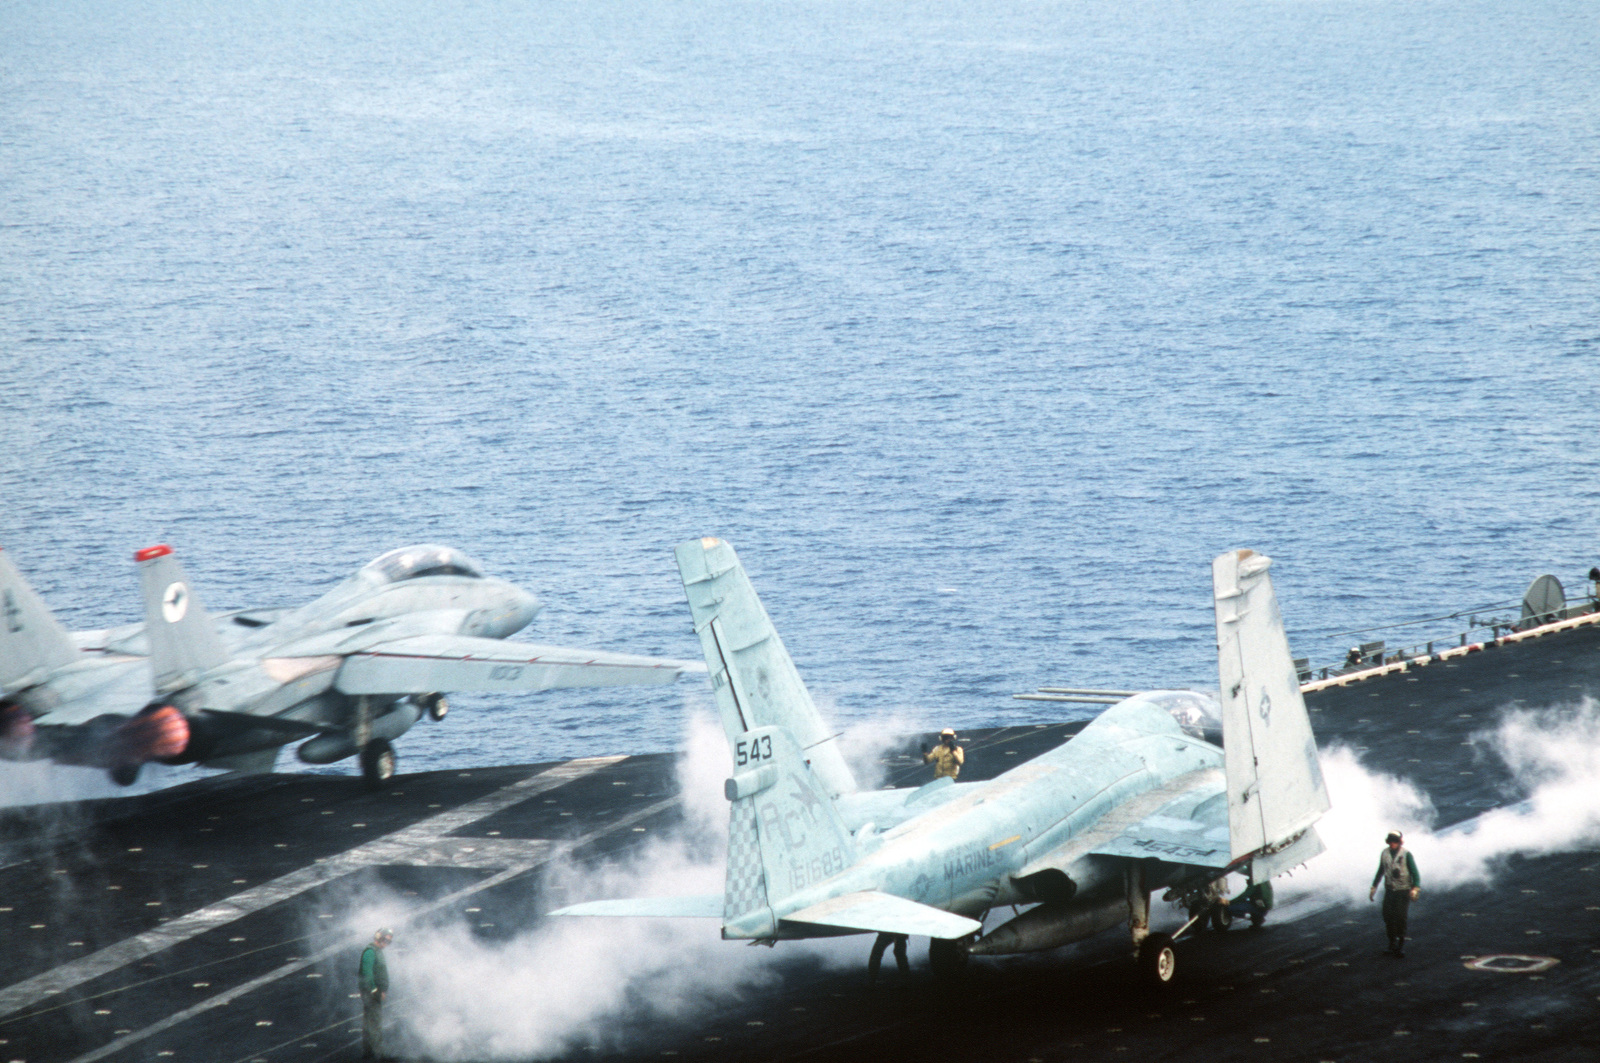 An A-6E Intruder is positioned on a catapult as an F-14A Tomcat aircraft is launched from the aircraft USS JOHN F. KENNEDY (CV 67) during NATO Exercise DISPLAY DETERMINATION '86